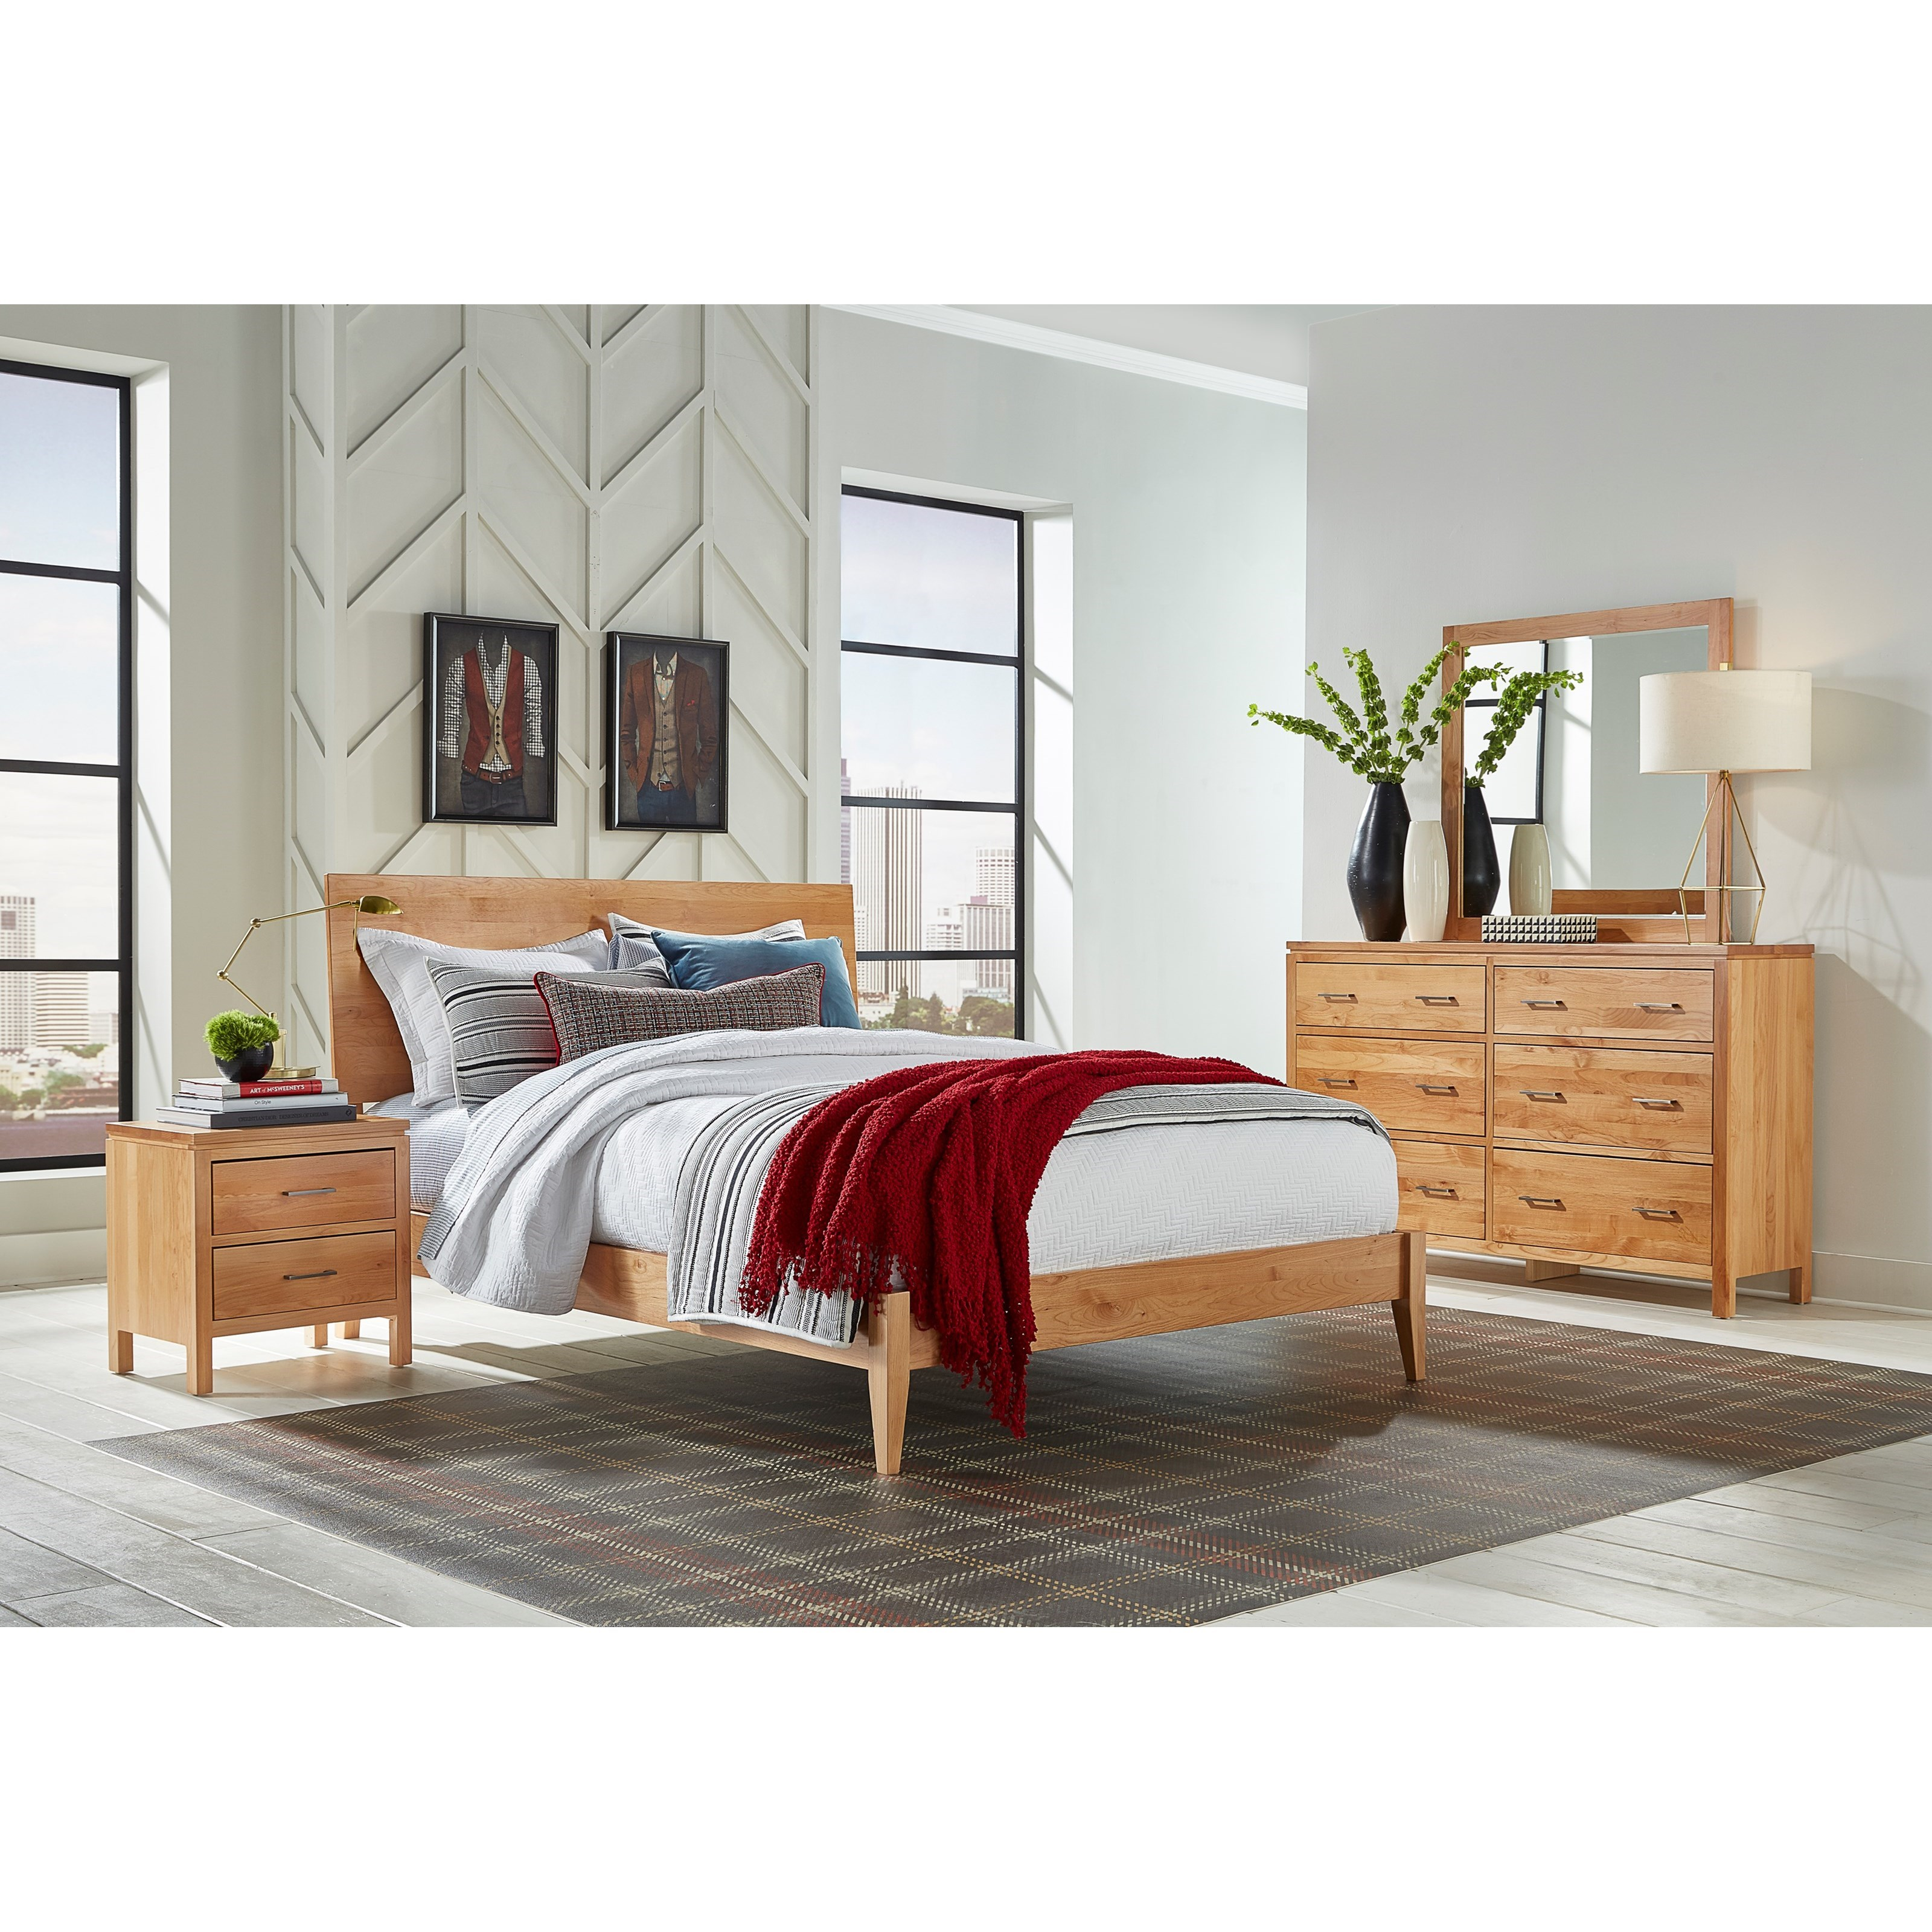 2 West Bedroom Group by Archbold Furniture at Mueller Furniture